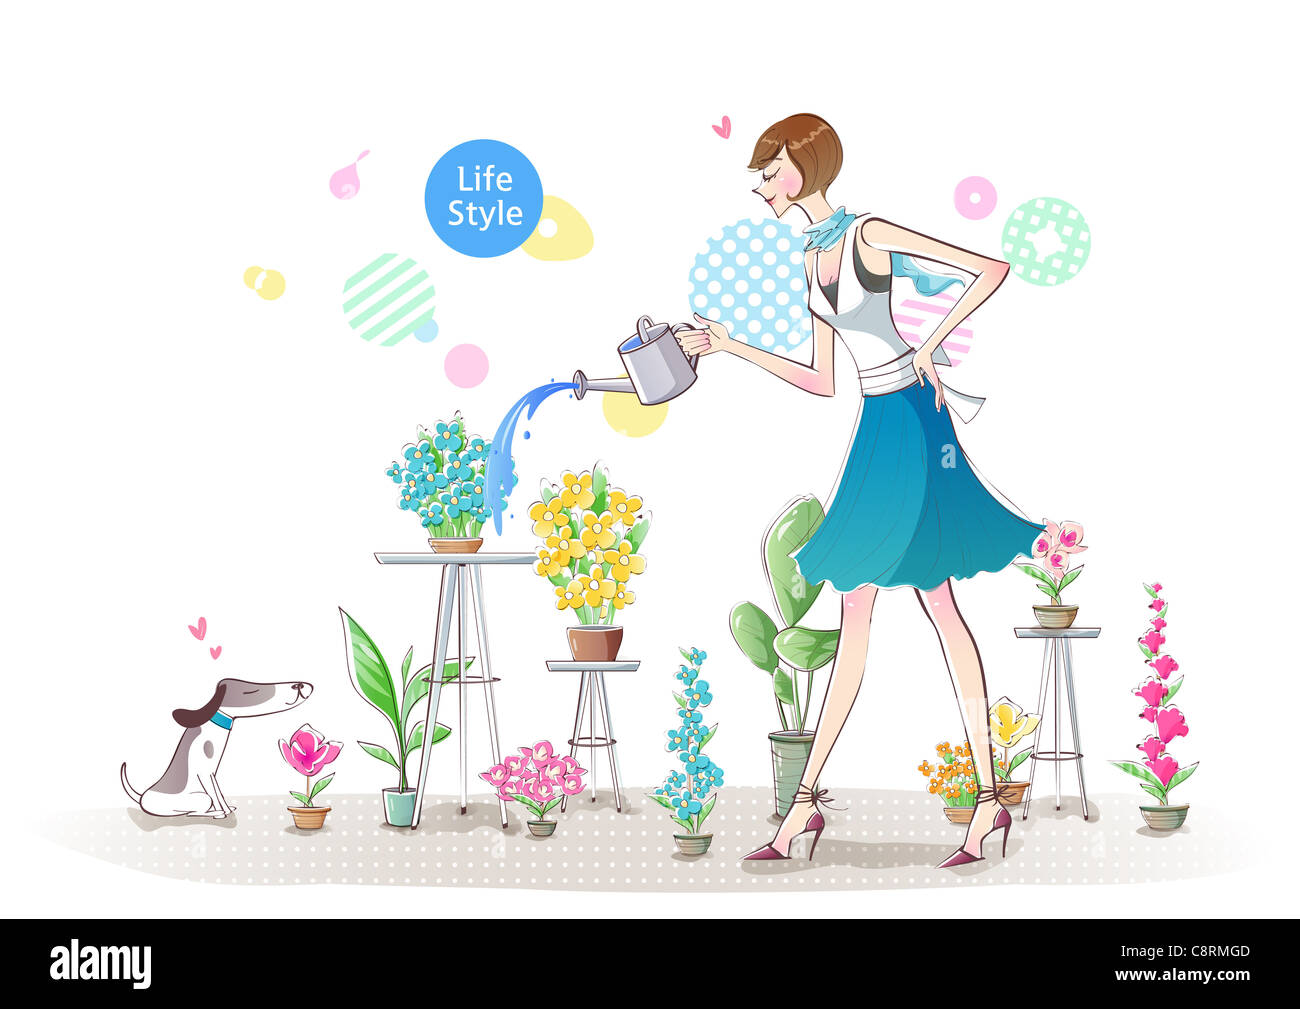 Illustration of woman watering flowers - Stock Image